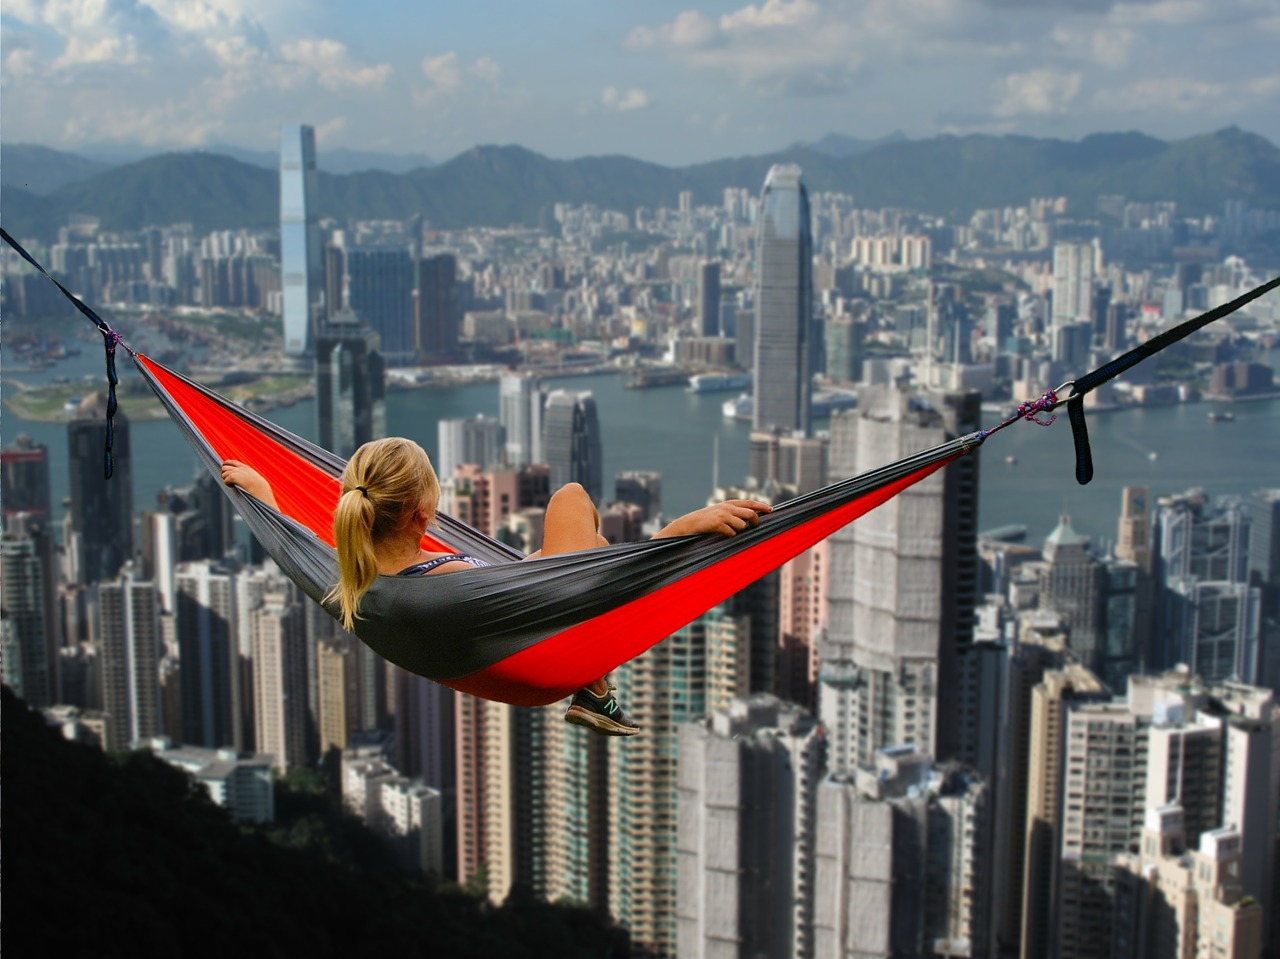 Hong KOng panorama, girl, hammock